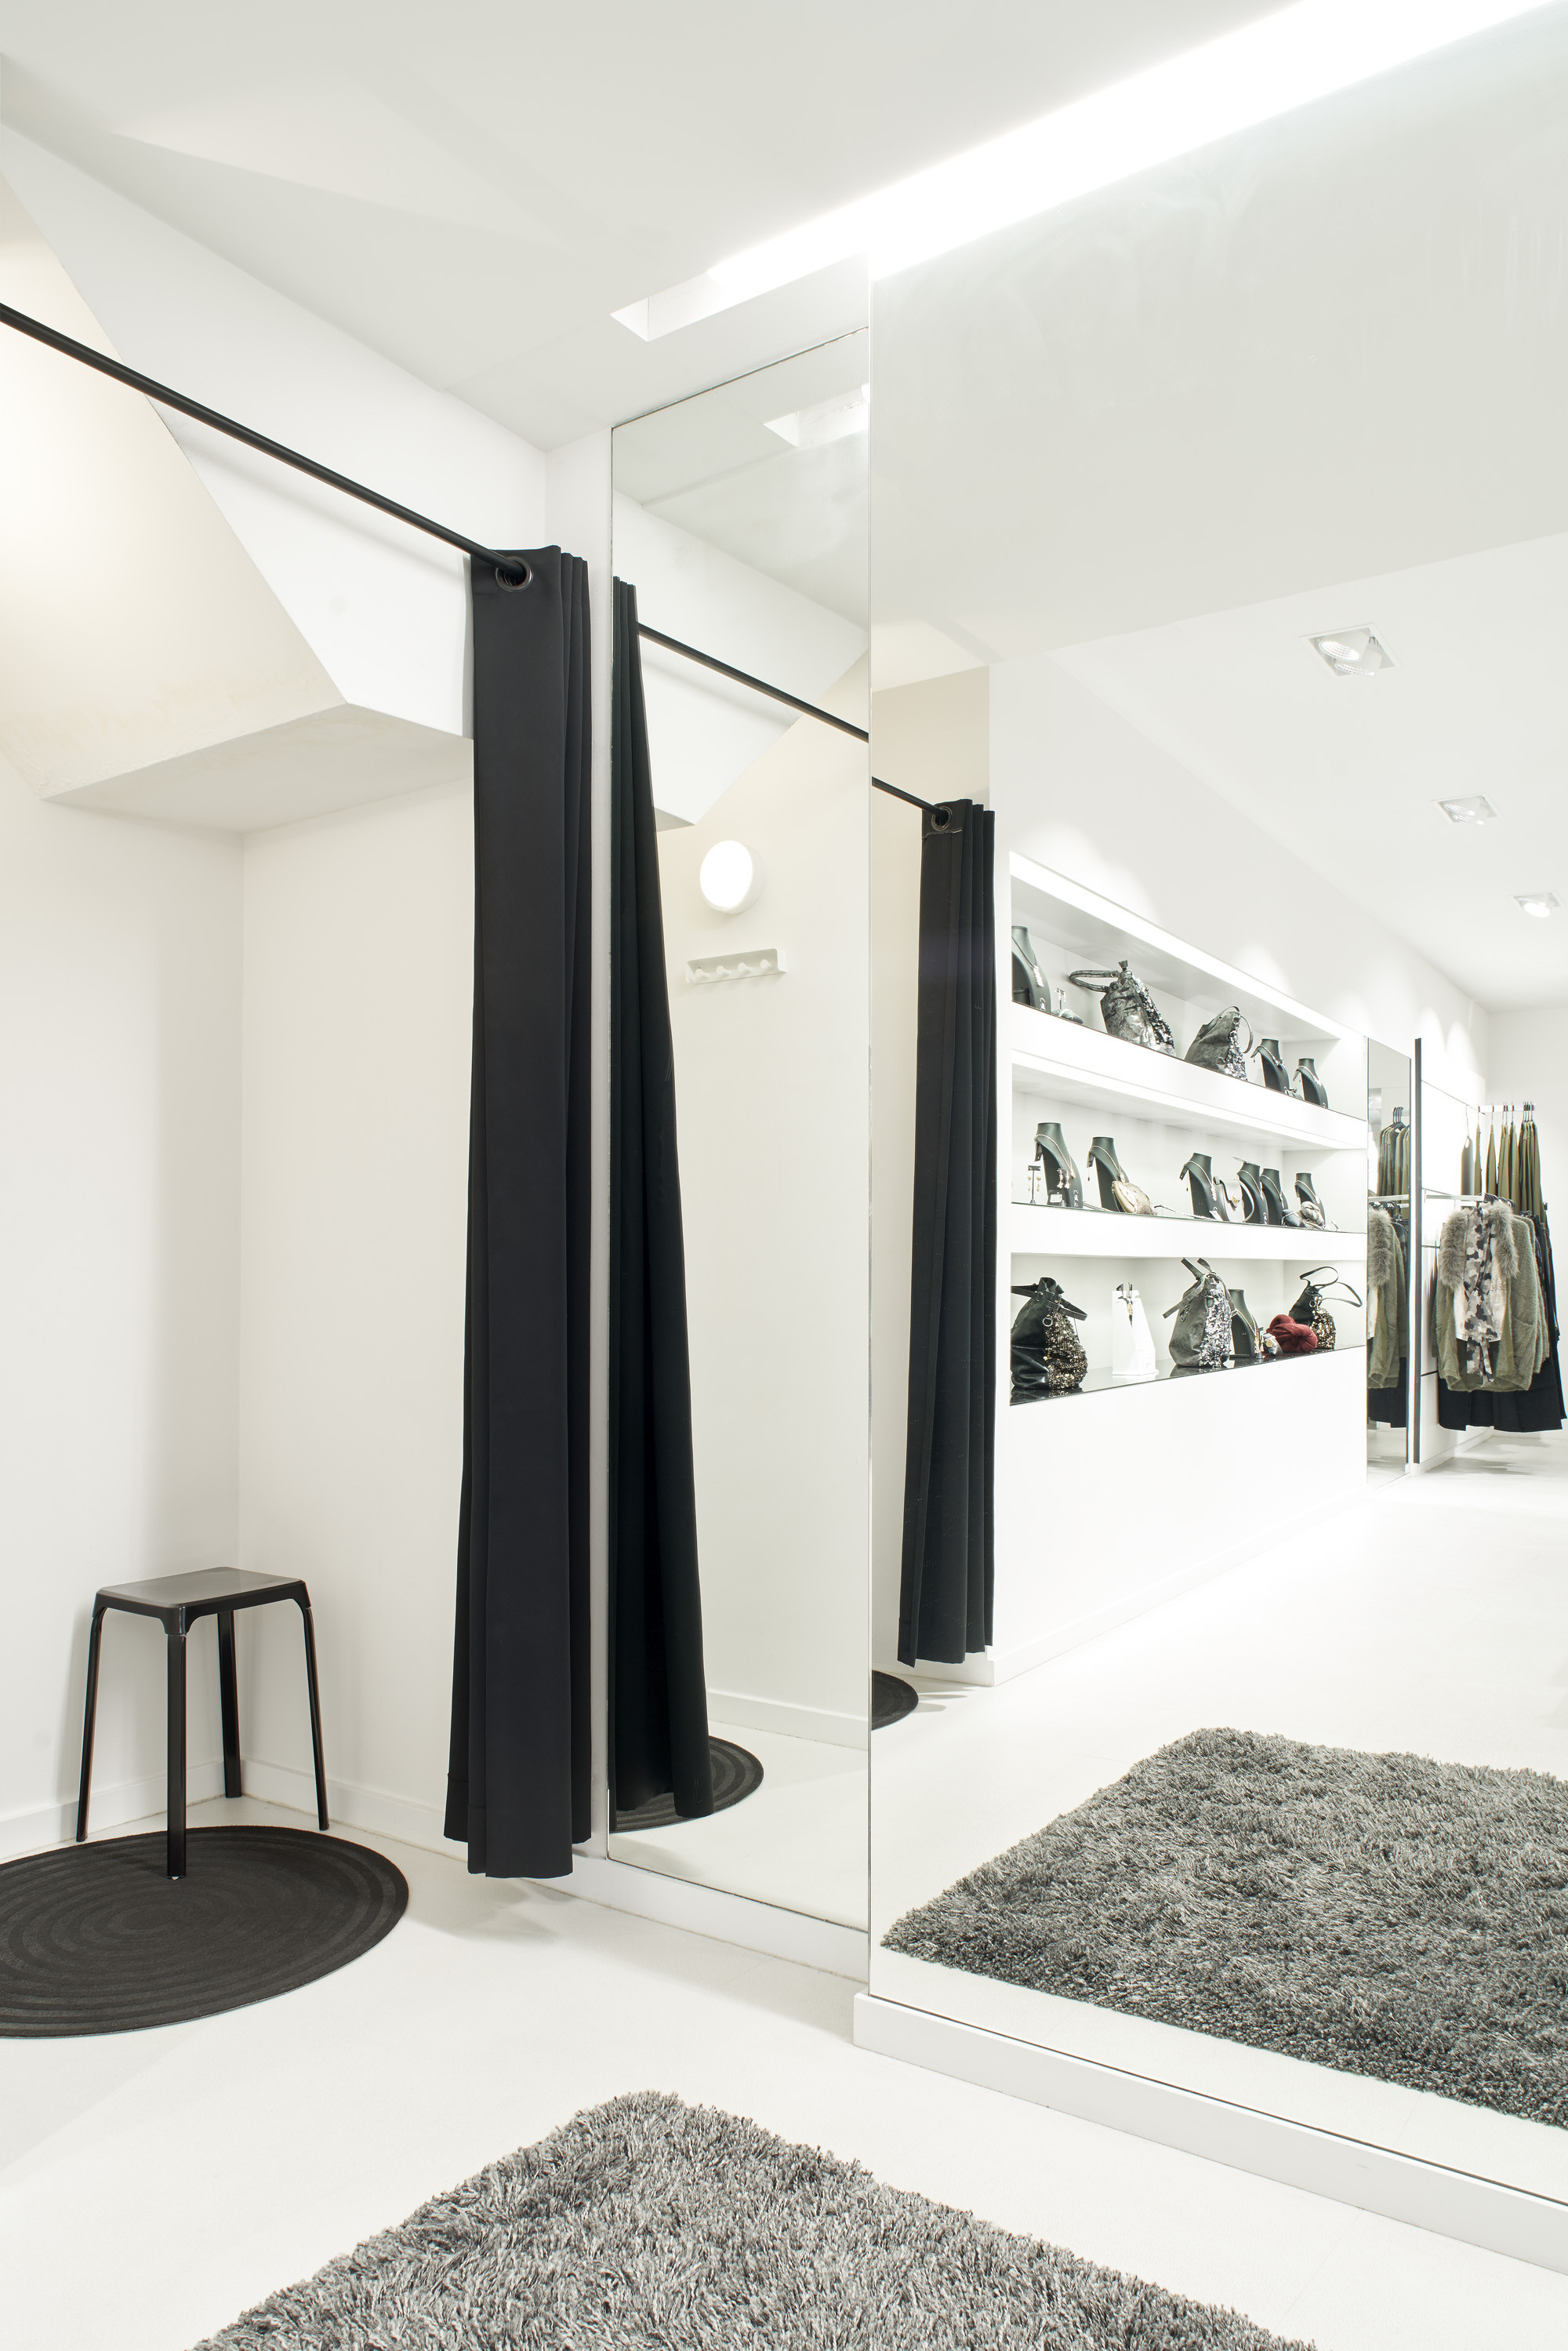 Dimensys - Be Fashion Aalst